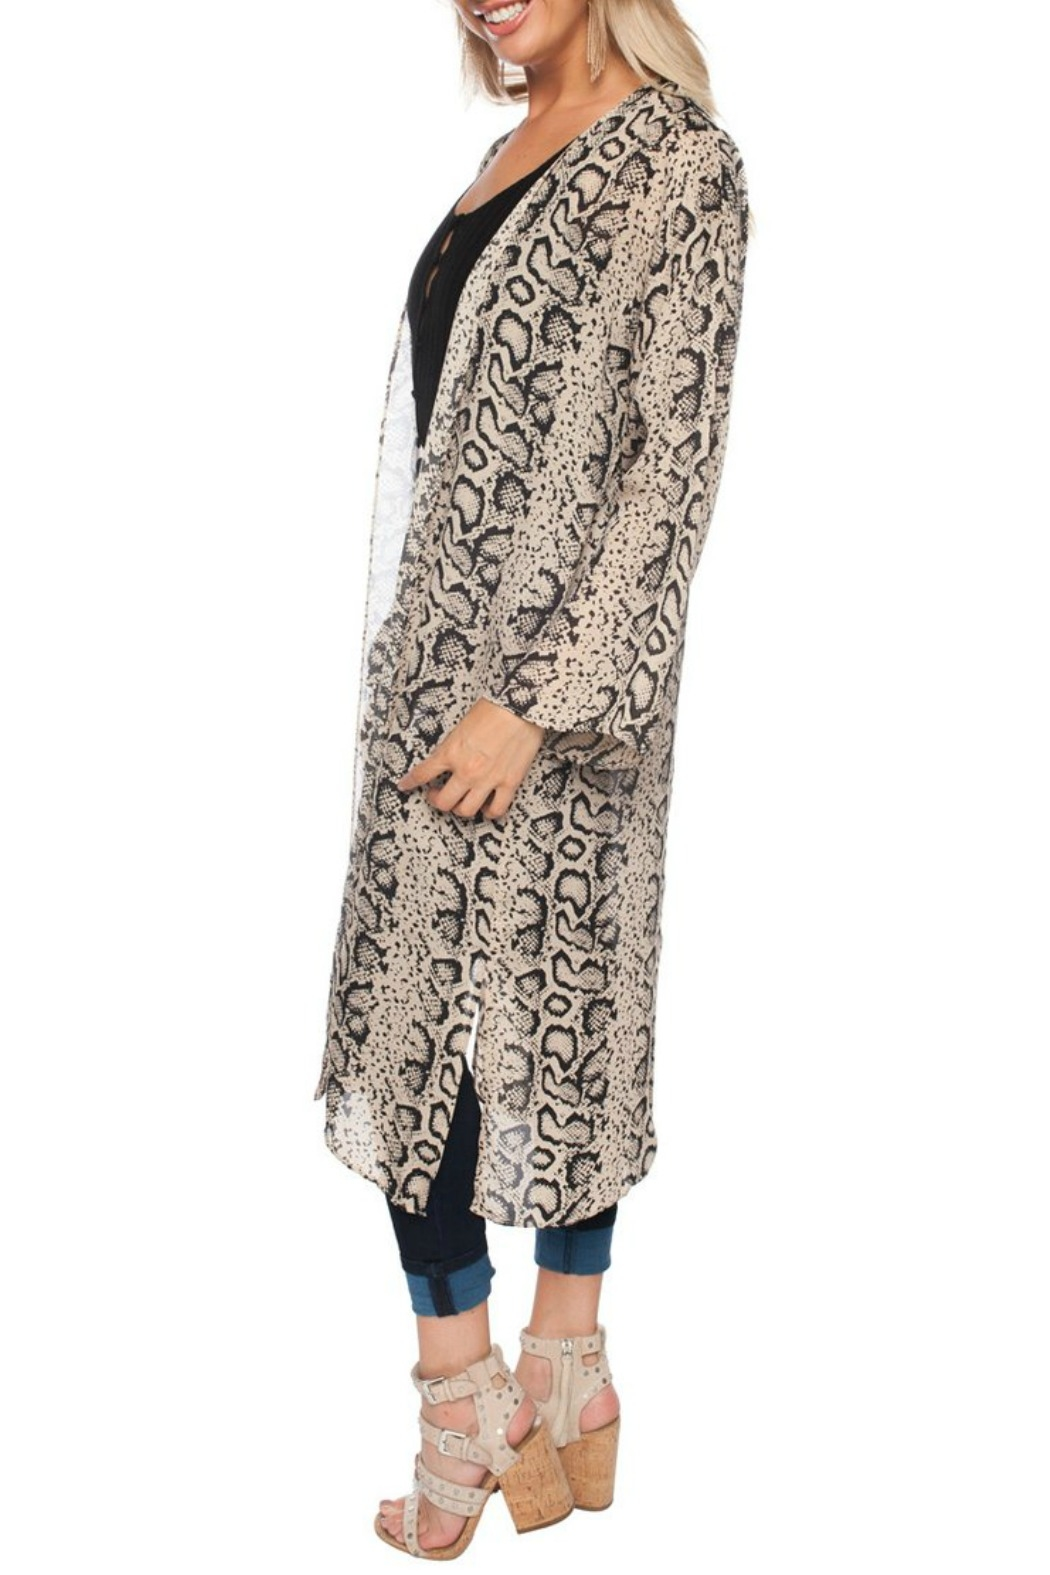 Buddy Love Snake Print Duster - Front Full Image